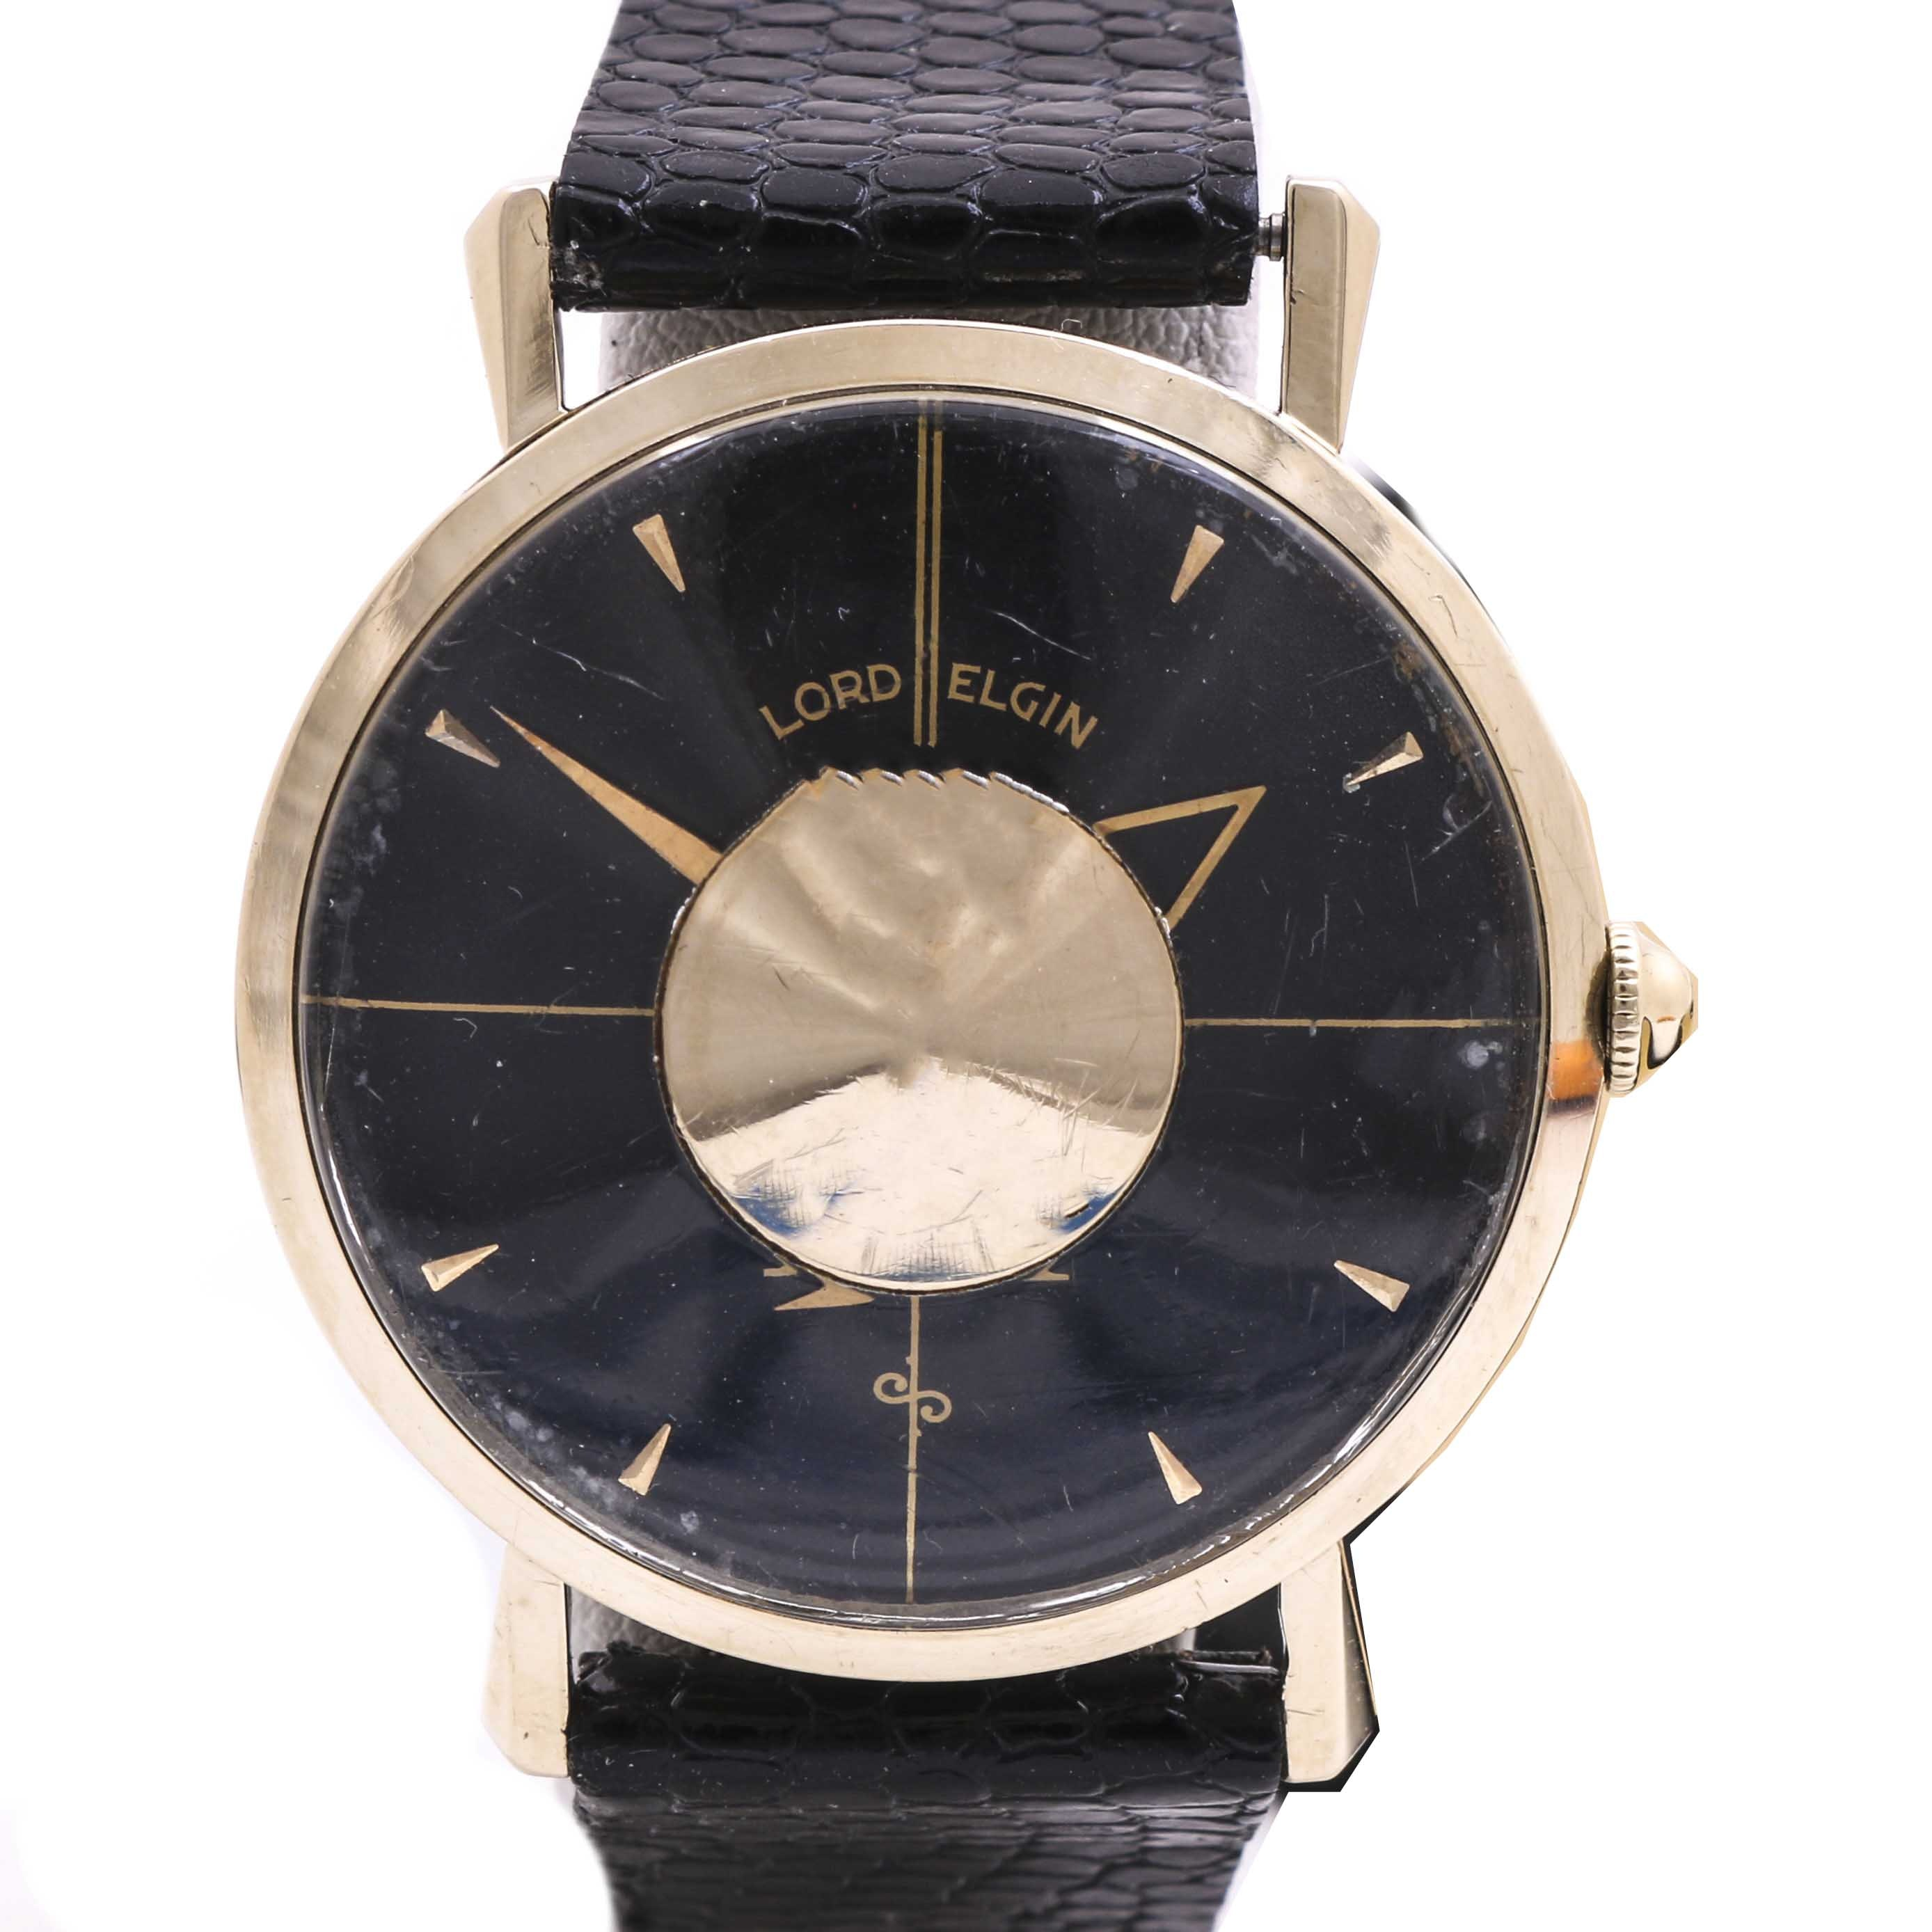 Lord Elgin 14K Yellow Gold Wristwatch and Leather Band